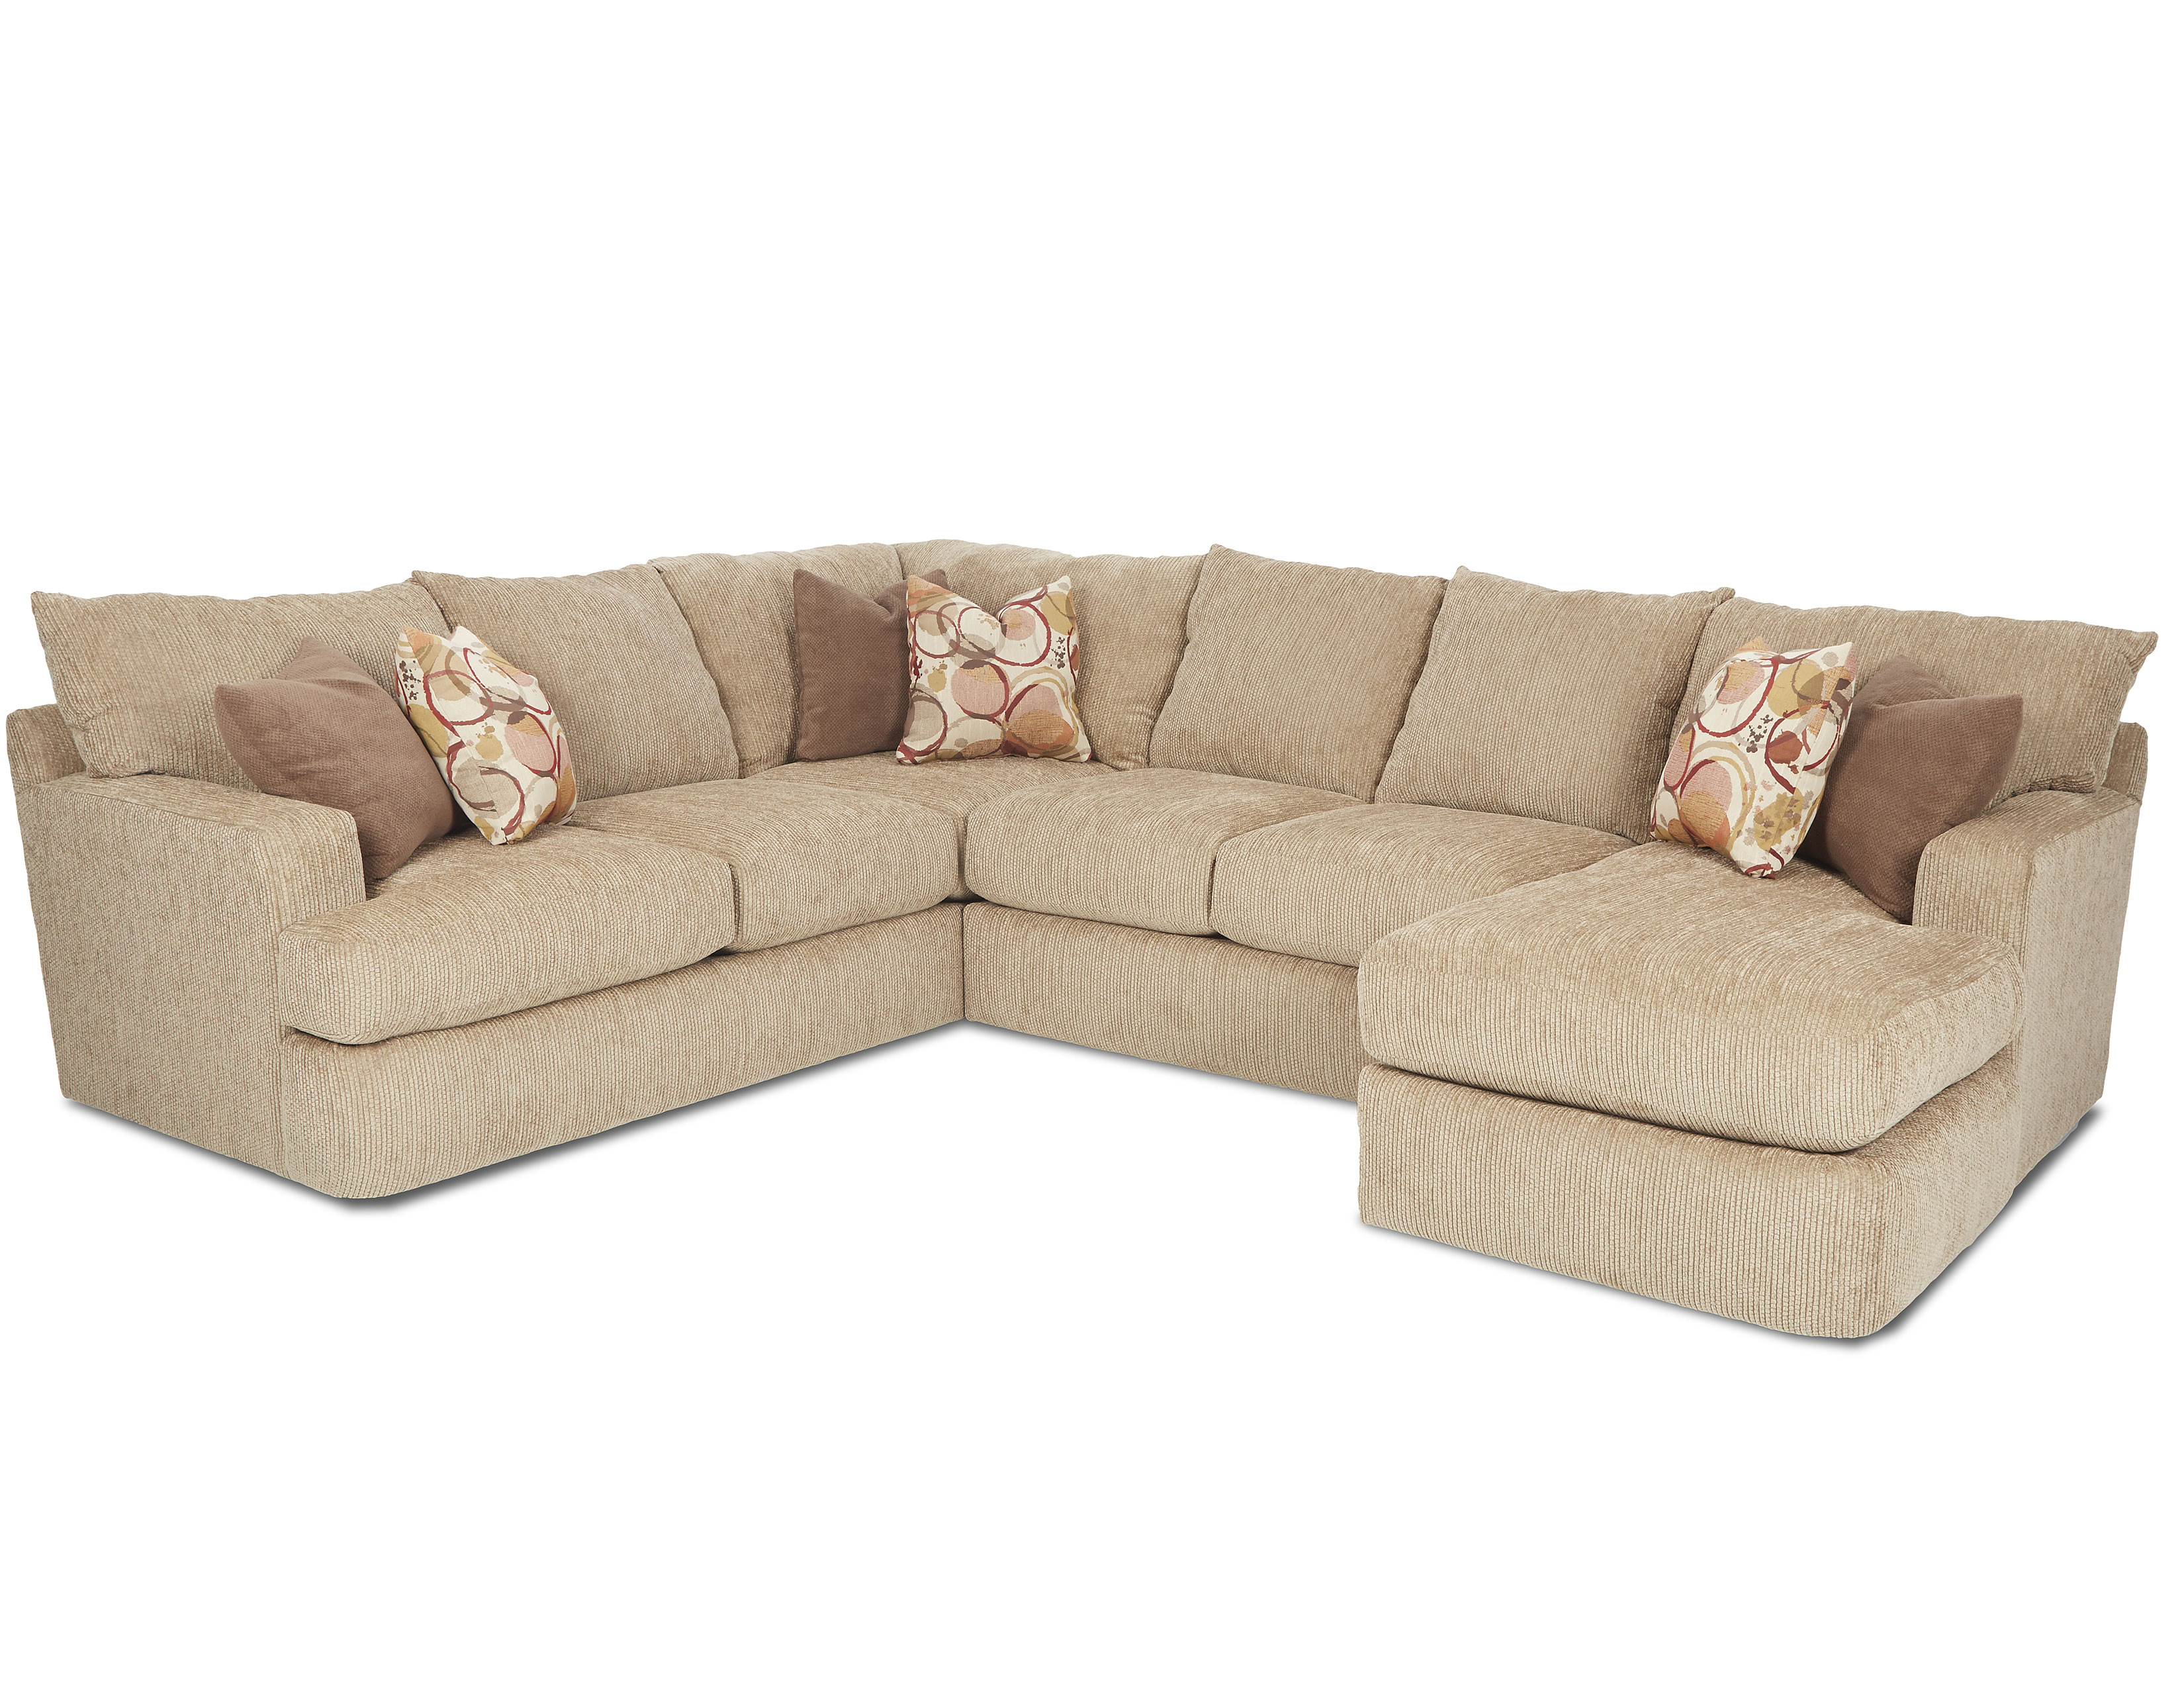 Oliver K41400 Sectional Hundreds Of Fabrics Sofas And